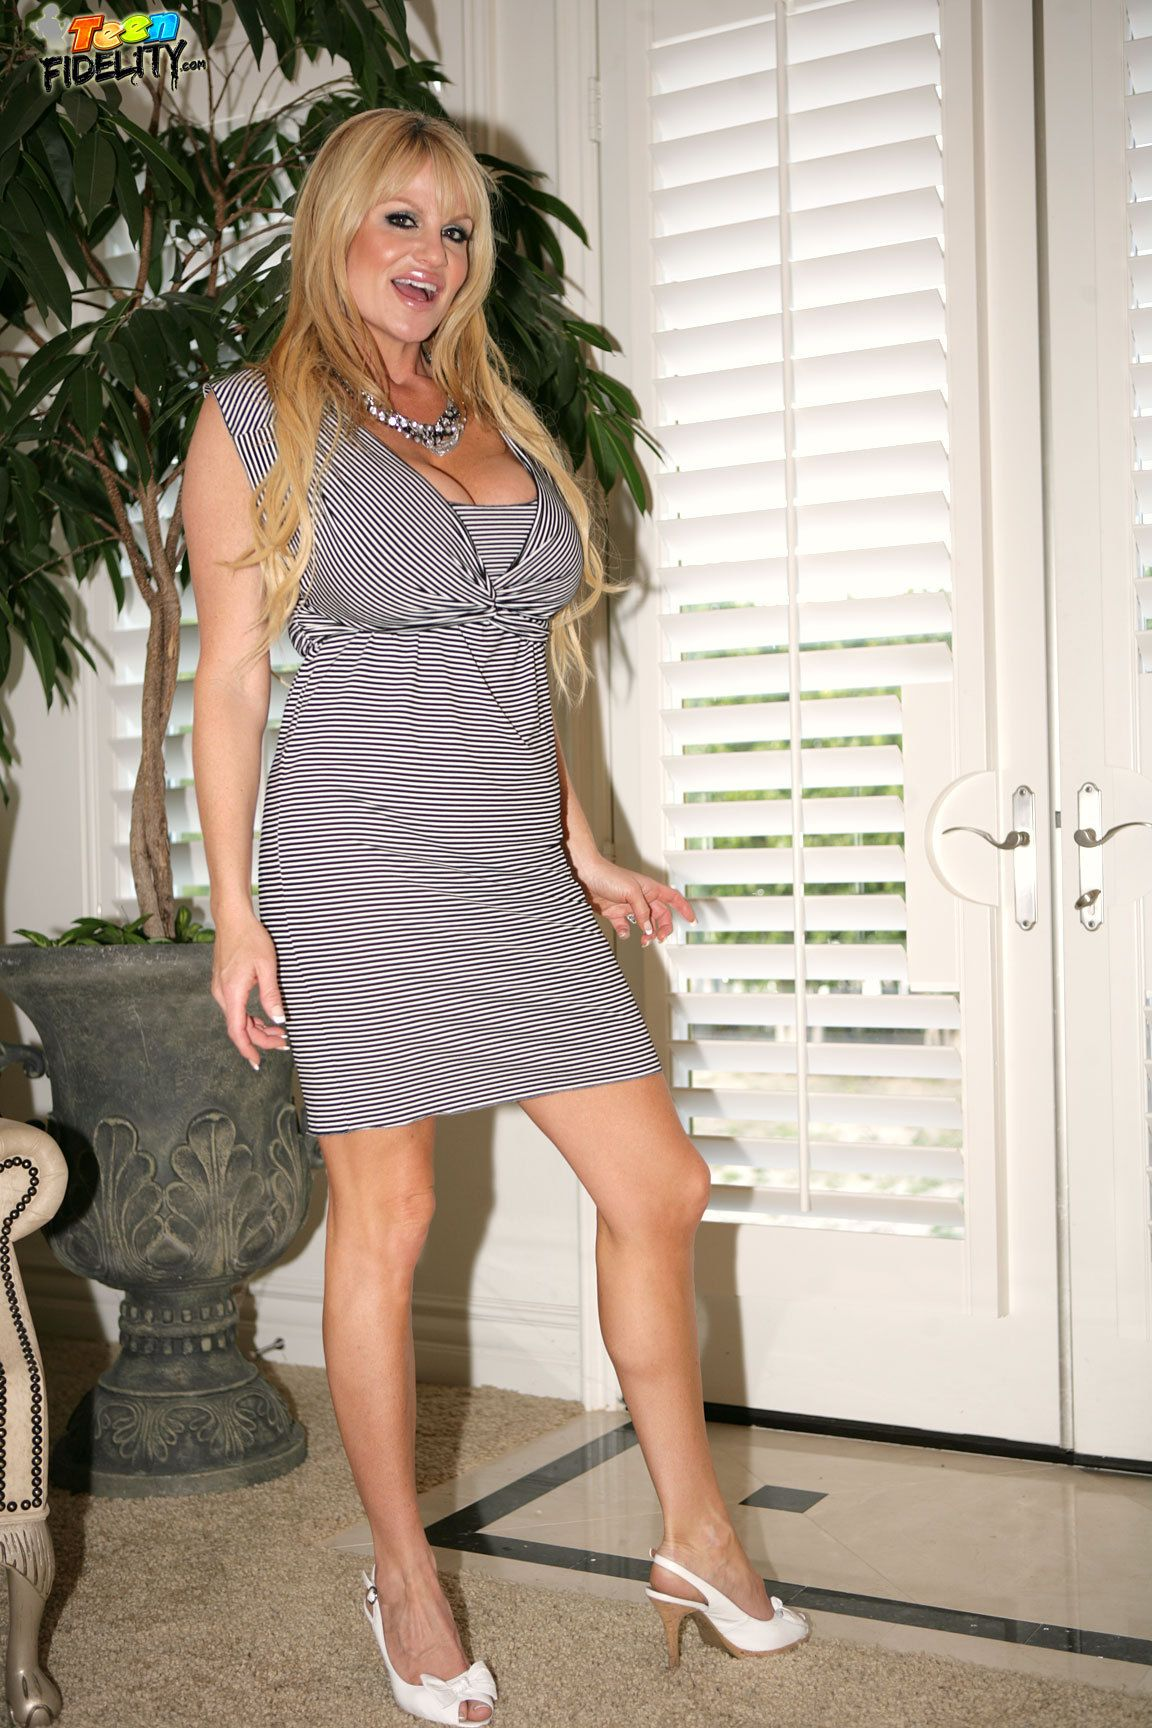 caliente cougar women Hot cougar sex sizzles @ youporn now watch a horny milf fuck on this porn tube click youporncom for busty women giving blowjobs & swallowing jizz.